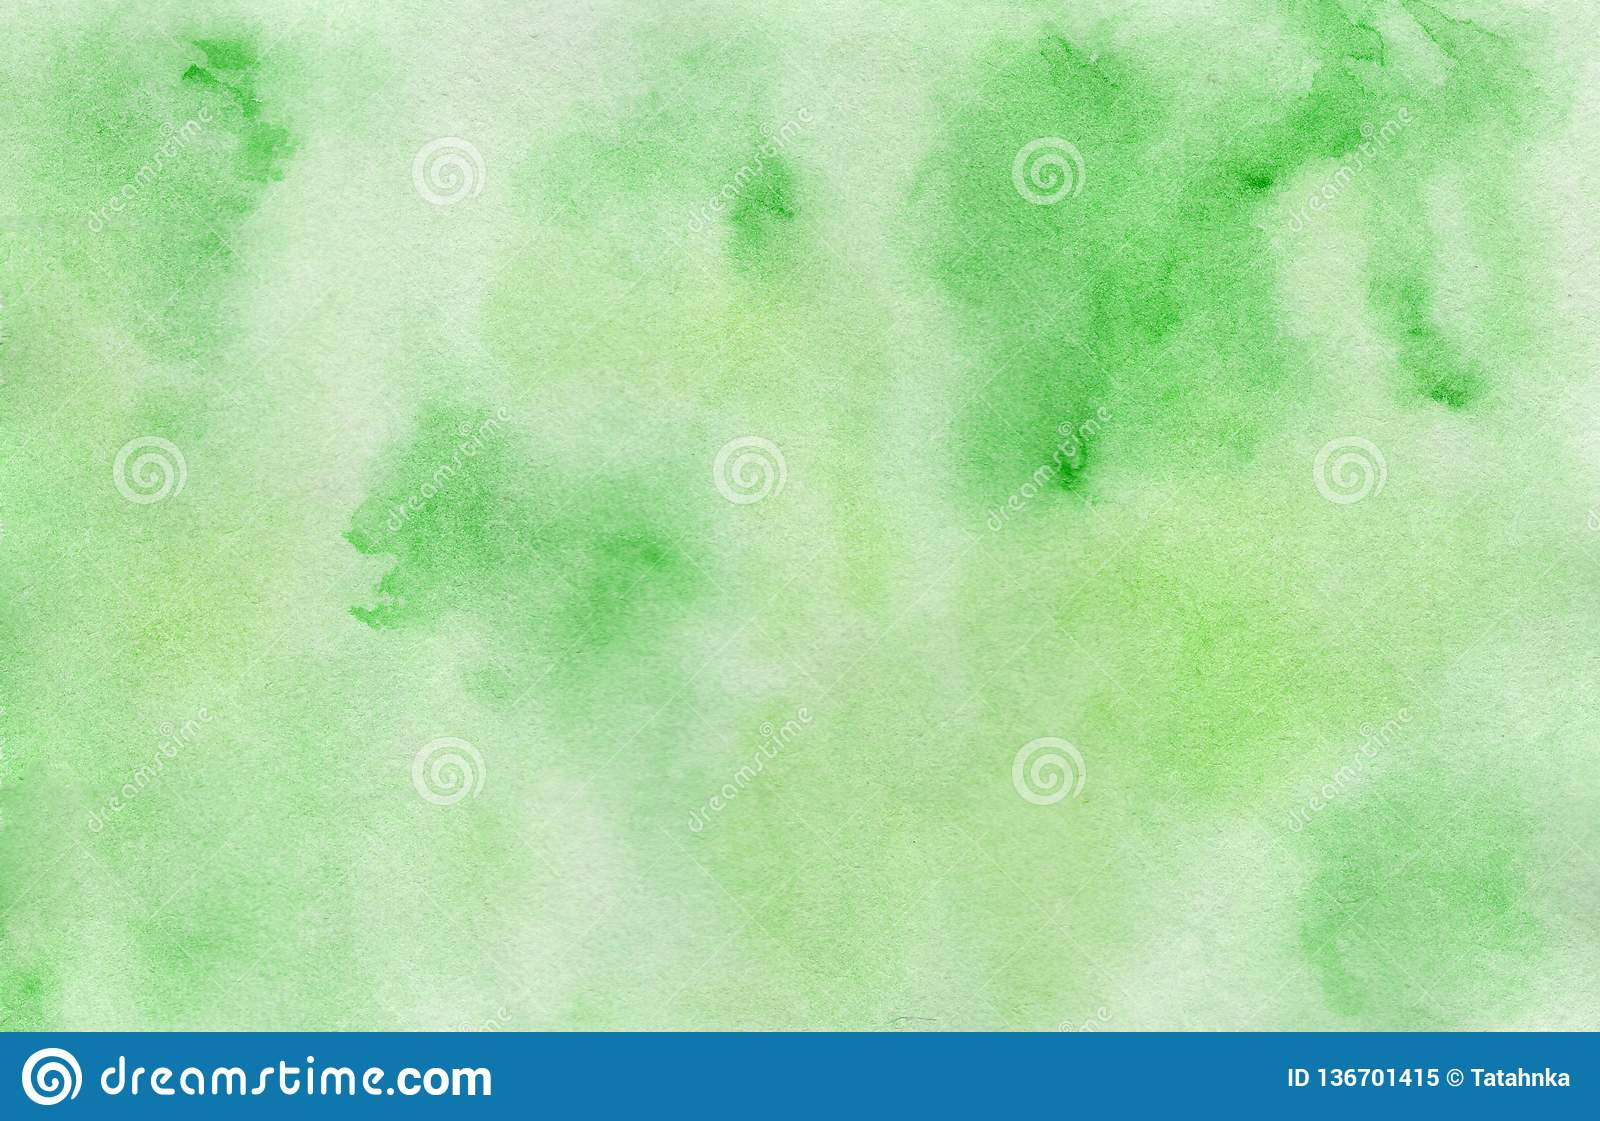 Bright hand painted green watercolor background